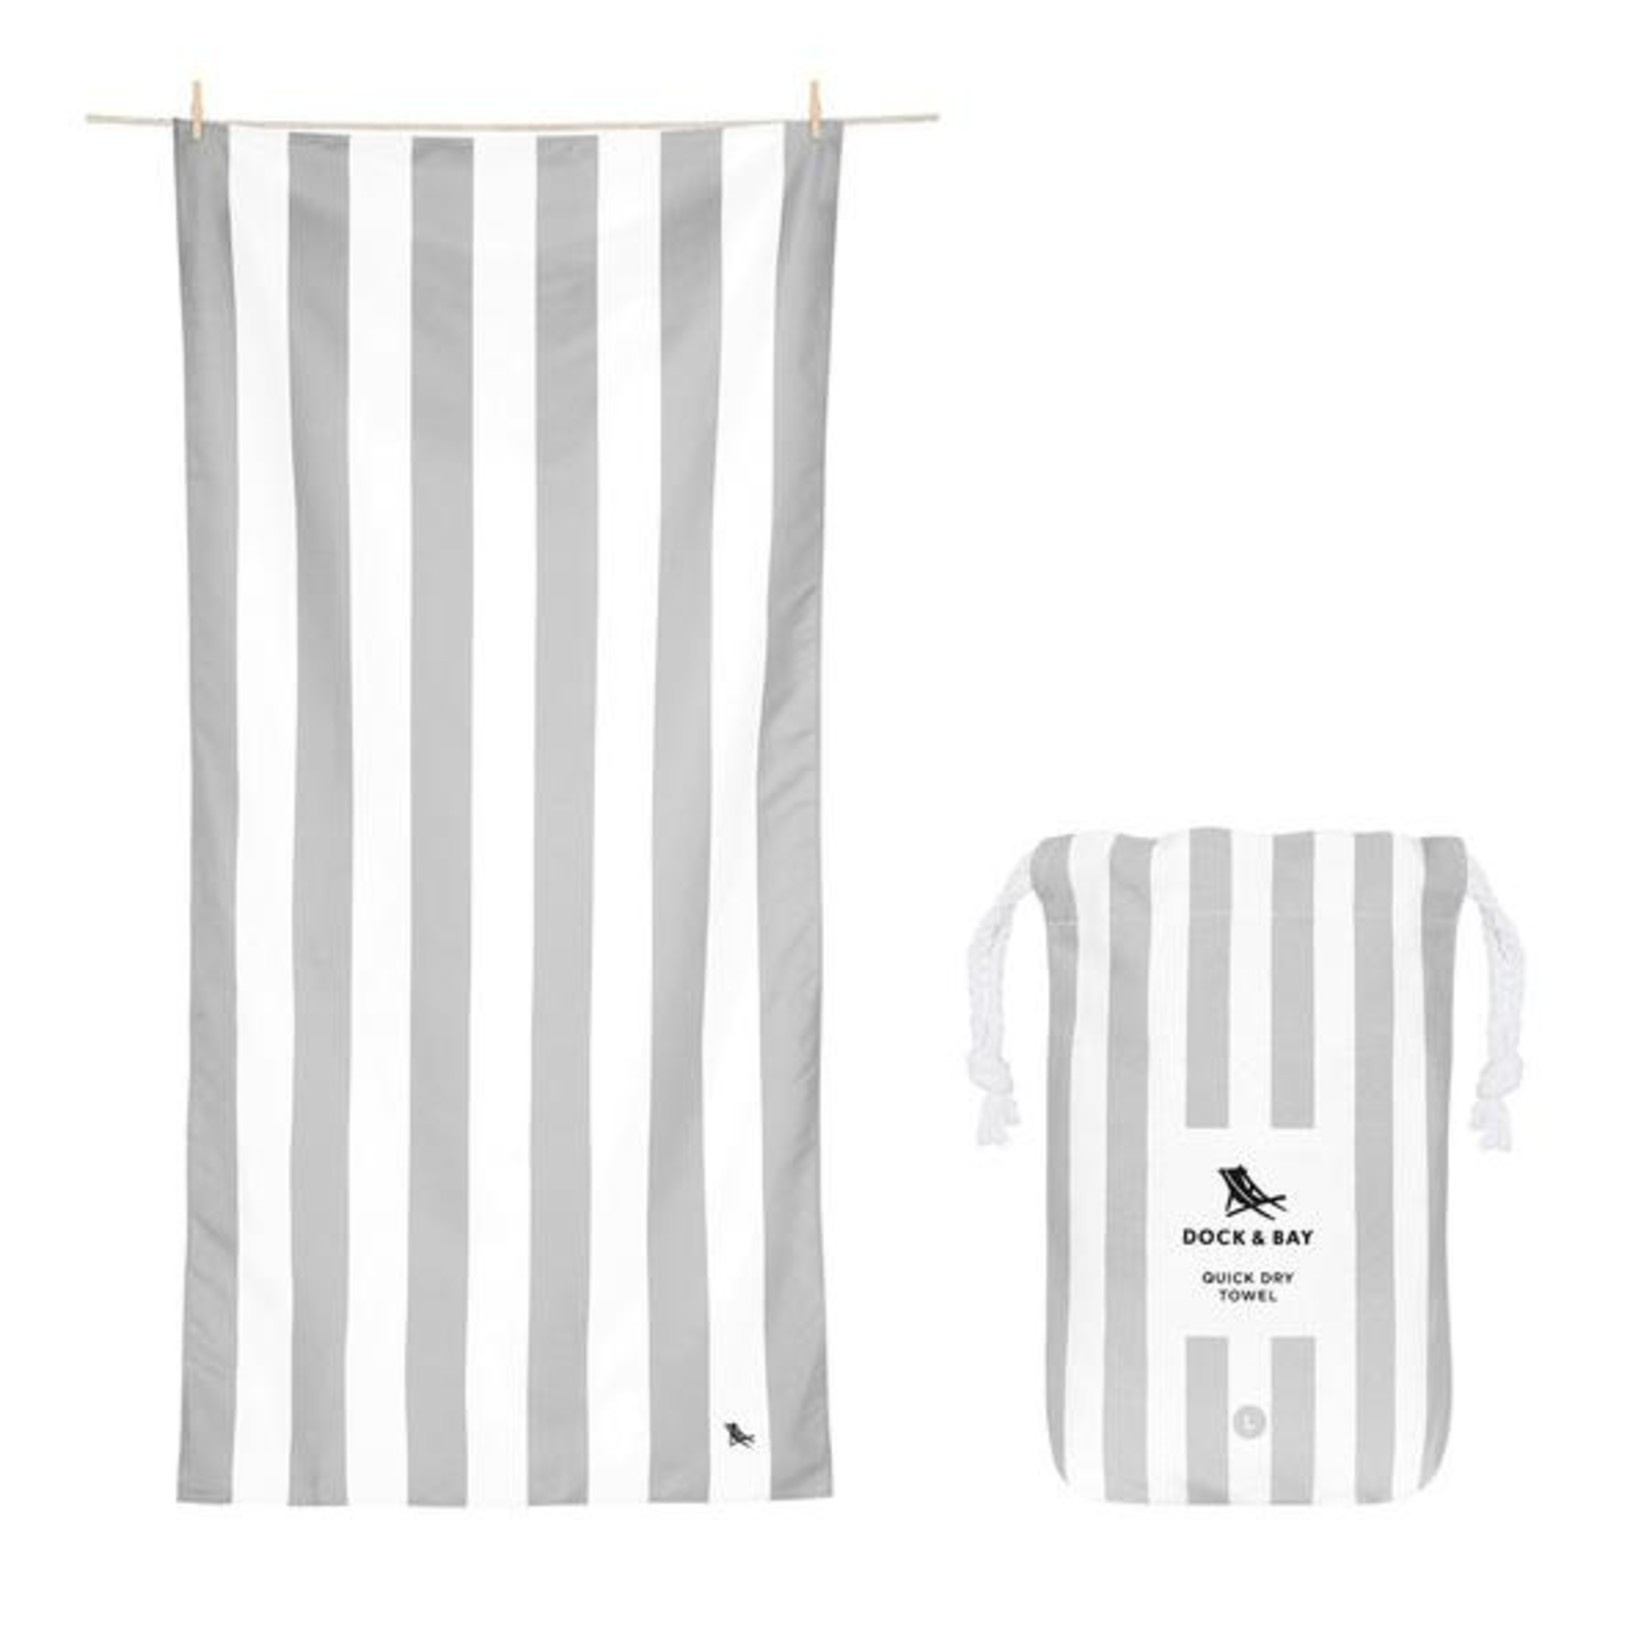 Dock & Bay Quick Dry Towels - Striped